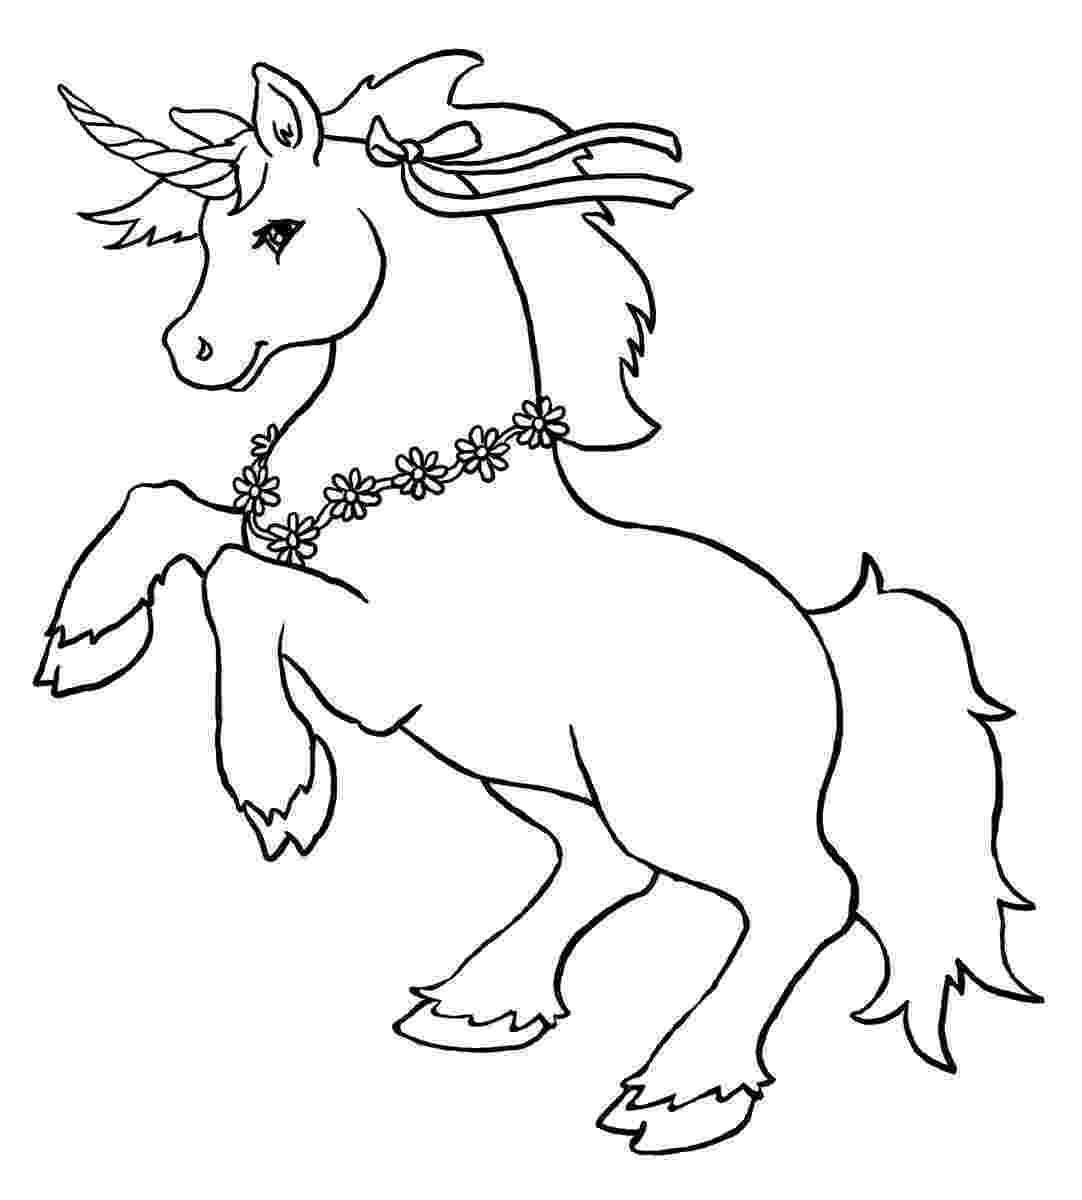 unicorns coloring pages unicorn head simple unicorns adult coloring pages unicorns coloring pages